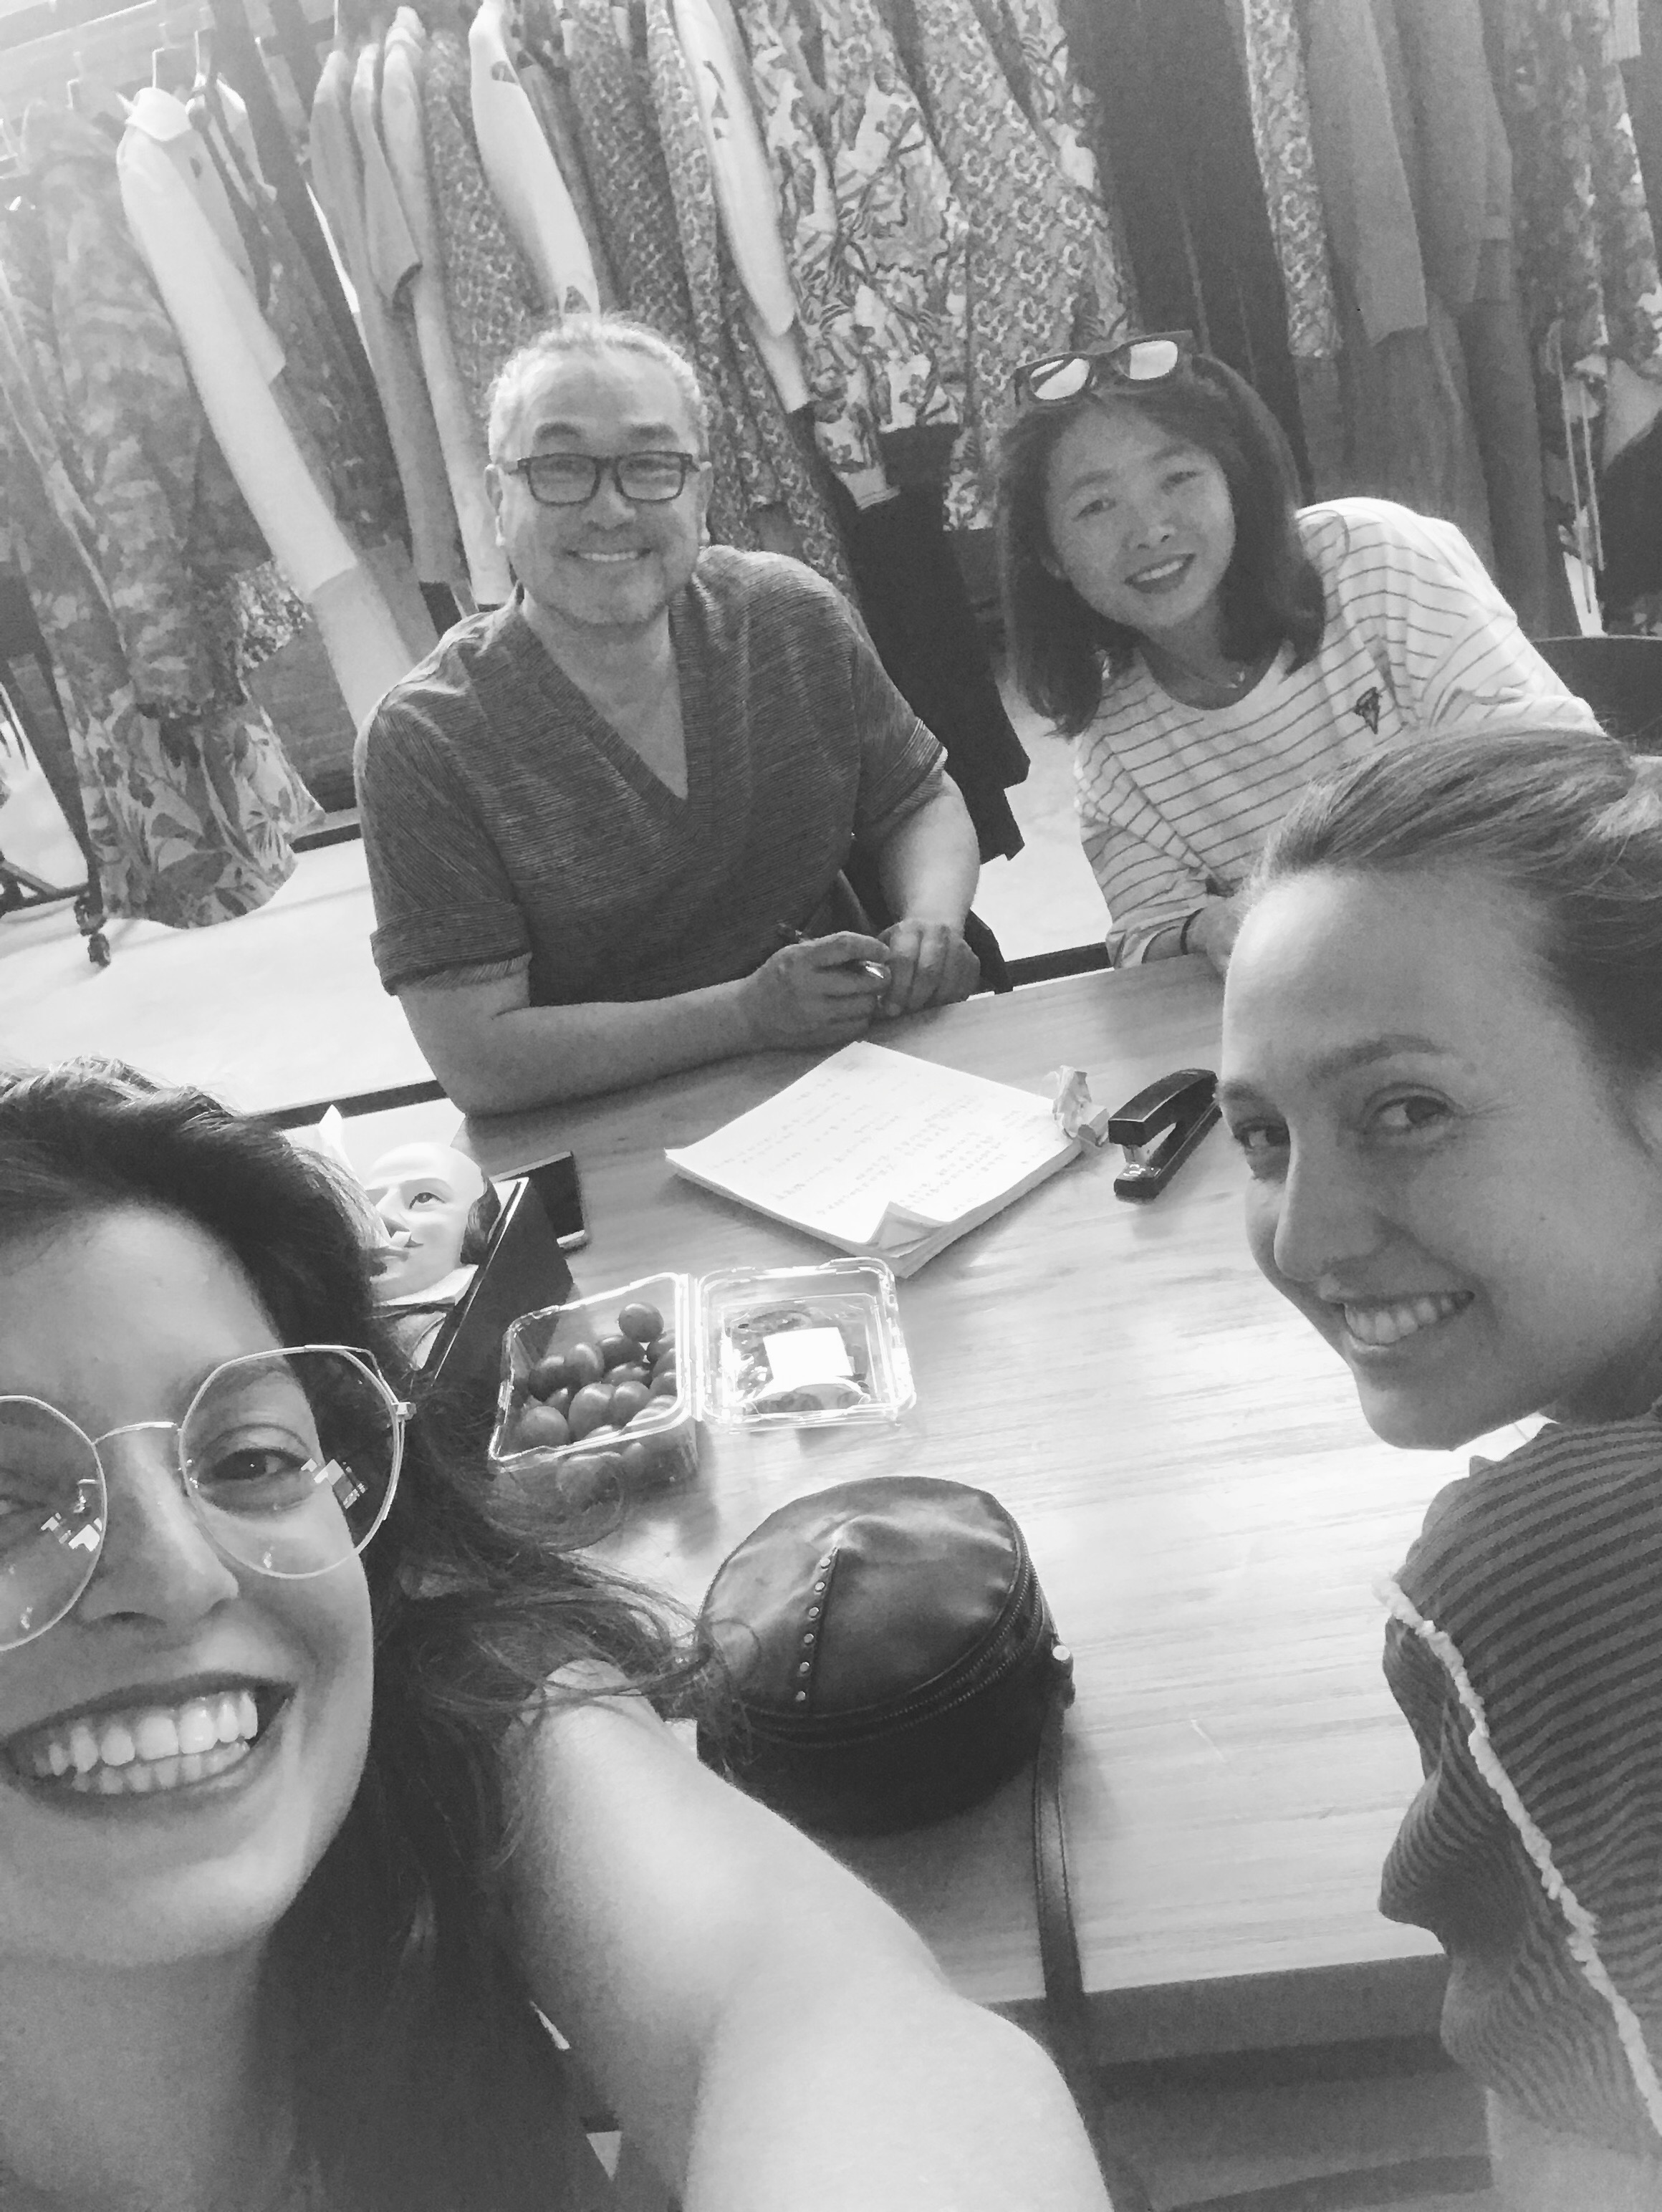 Meet the people who make your clothes : Paper pattern master HSU JEN SEN, Seamstress with golden hands WENDY, Maude & Hélène the designers.